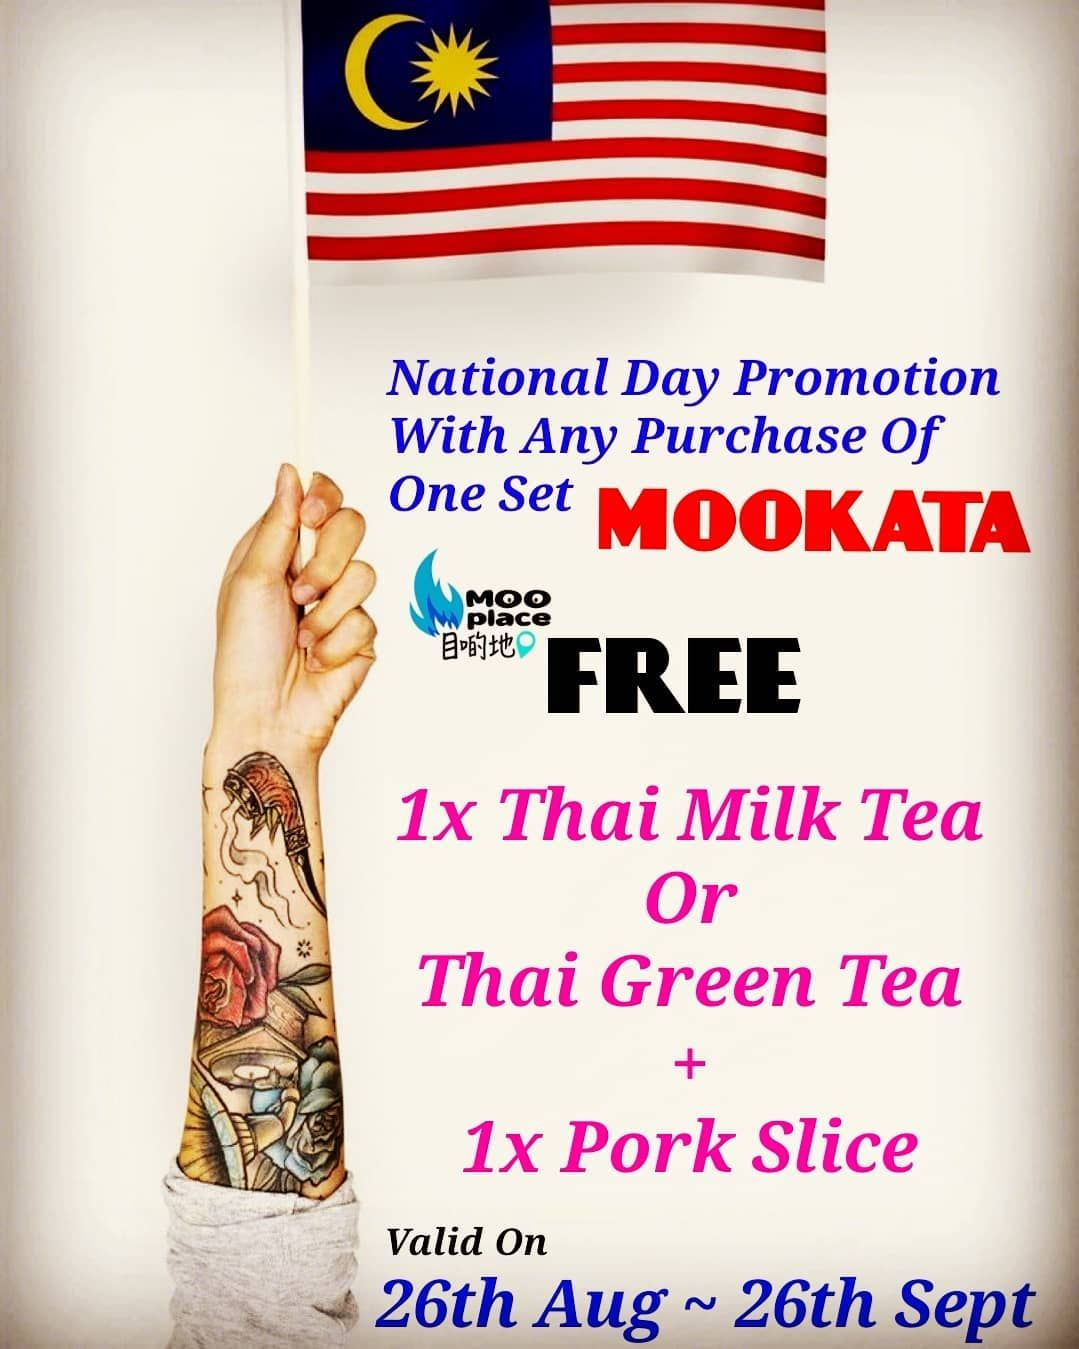 NATIONAL DAY Promotion With Any Purchase Of 1Set MOOKATA FREE 1x Thai Milk / Green Tea... NATIONAL DAY Promotion With Any Purchase Of 1Set MOOKATA FREE 1x Thai Milk / Green Tea  1x Pork Slice  VALID ON 26th Aug  26th Sept 2019